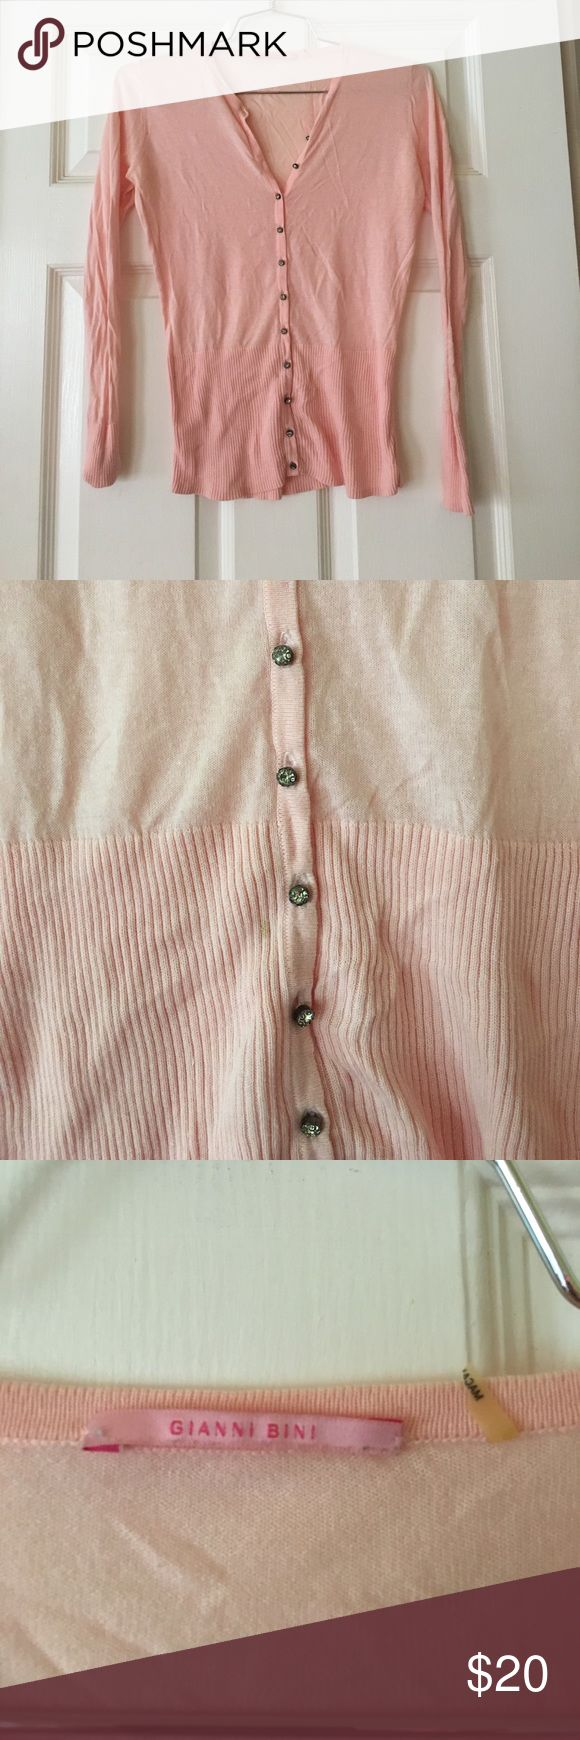 Gianni bini pink top size xs long sleeve cotton Gianni bini pink top size xs long sleeve cotton Gianni Bini Tops Button Down Shirts